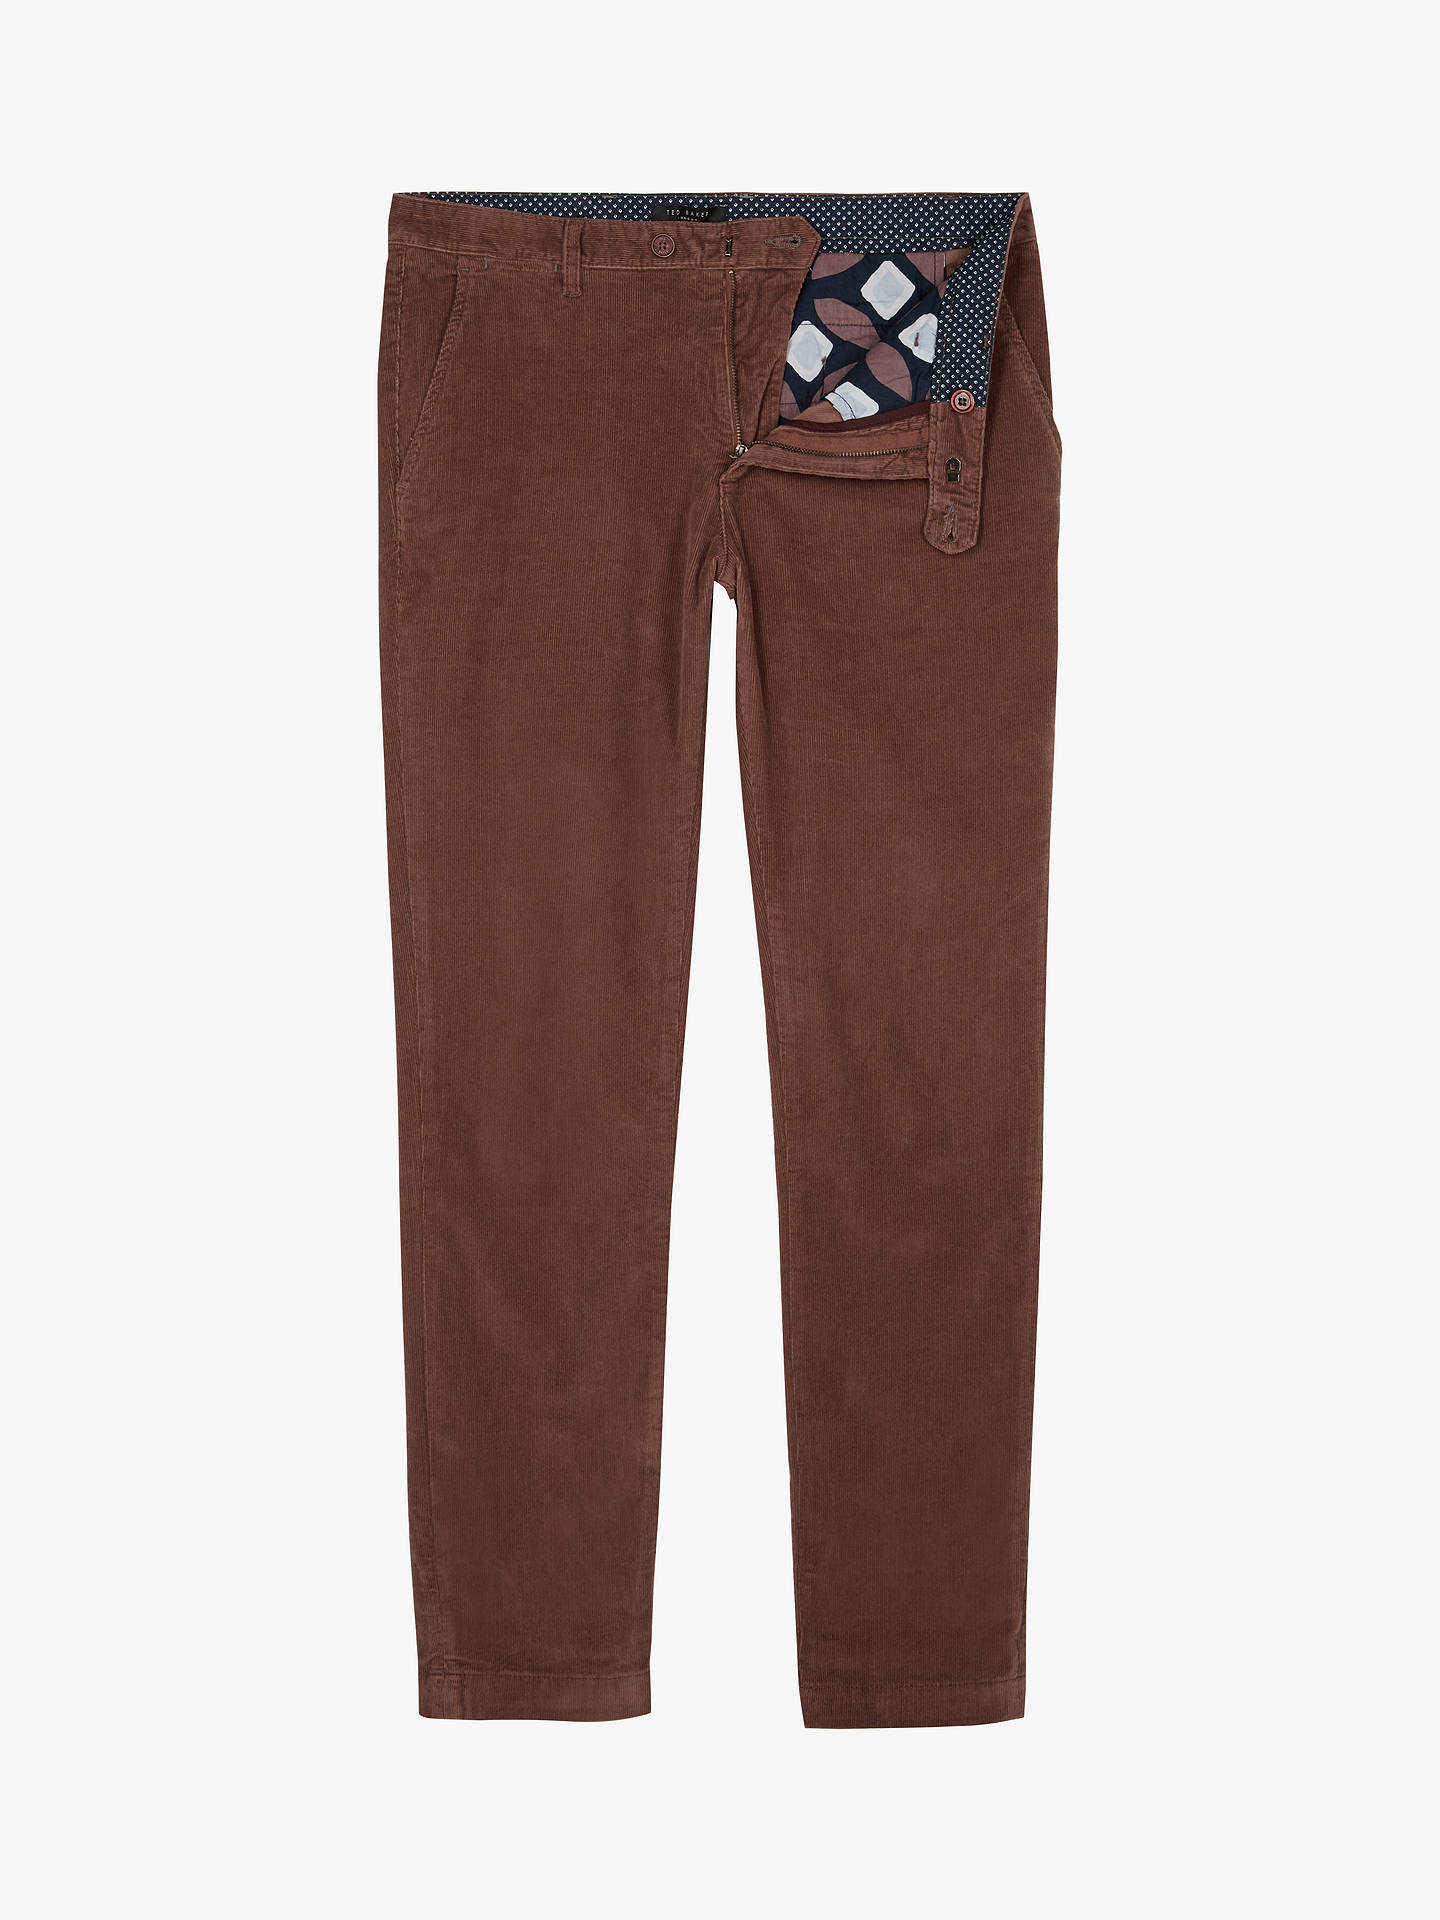 Buy Ted Baker Cordtro Cord Trousers, Mid Pink, 34L Online at johnlewis.com